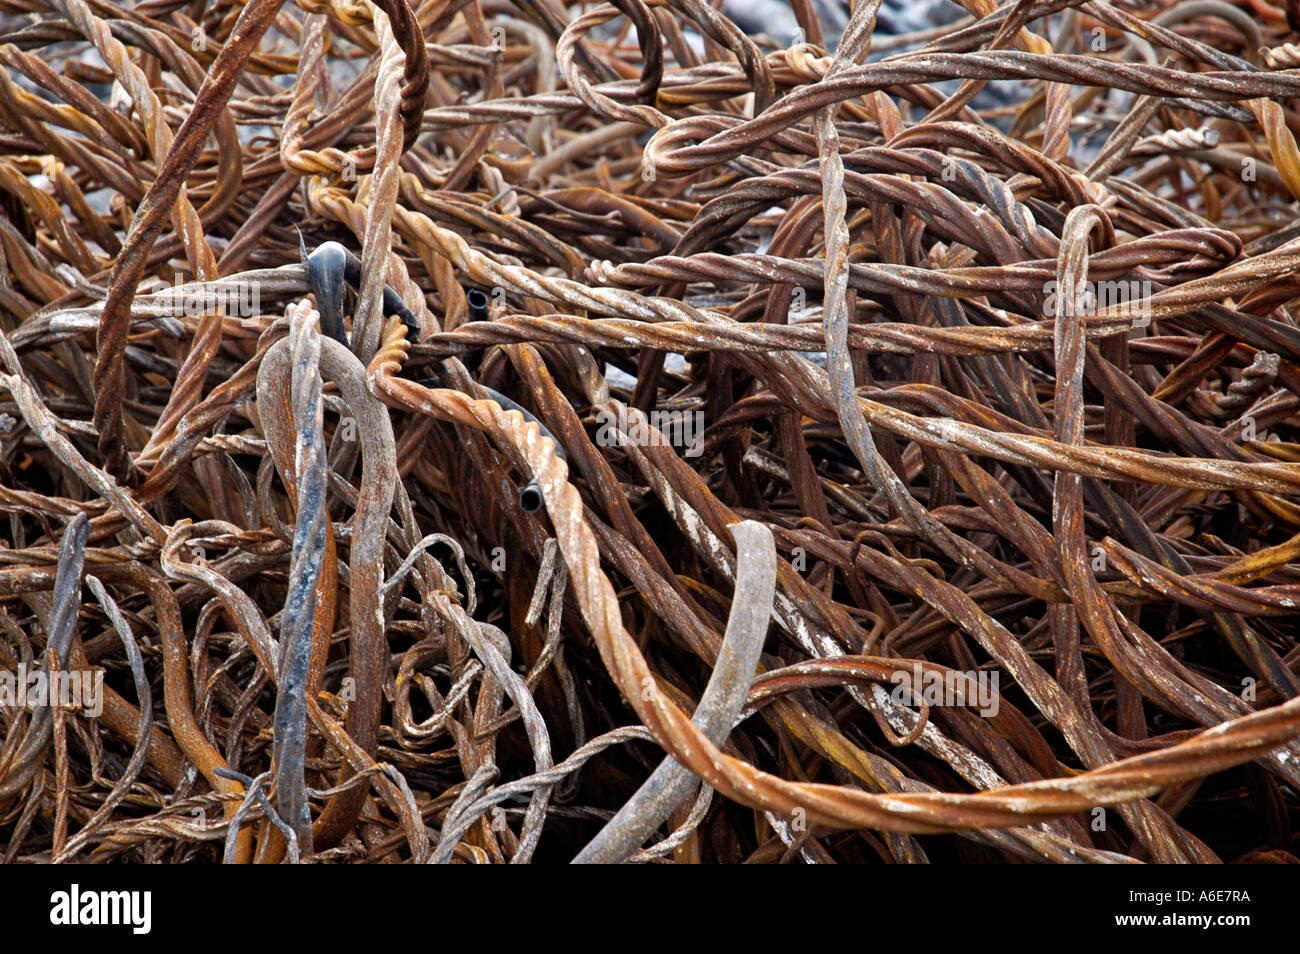 Iron scrap on the compound of the former coking plant Hansa, Westfaelisches industry museum, route of the industry culture - Stock Image